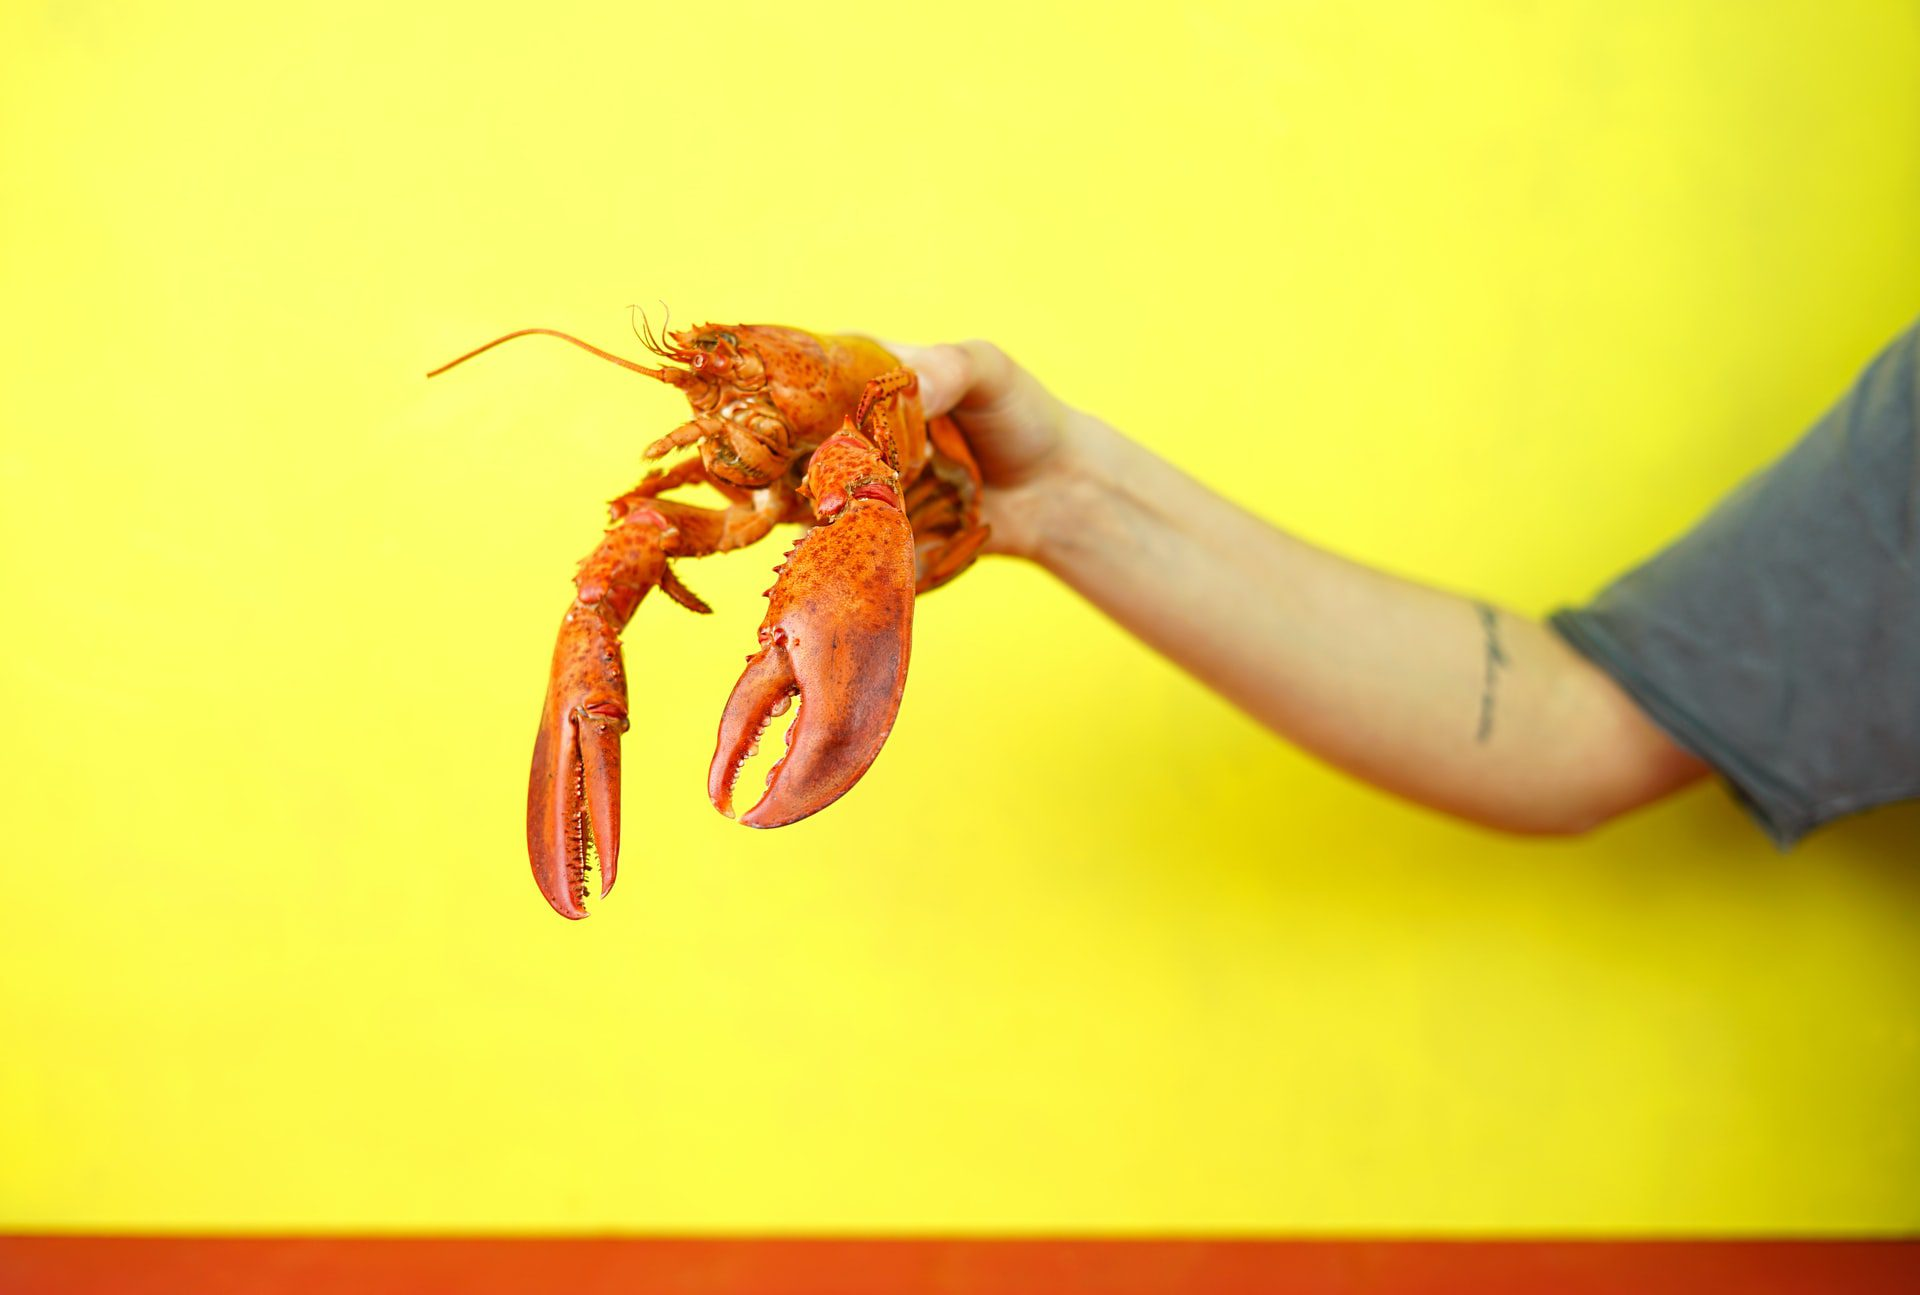 Live Lobsters Delivered Straight to Your Door- Now What?